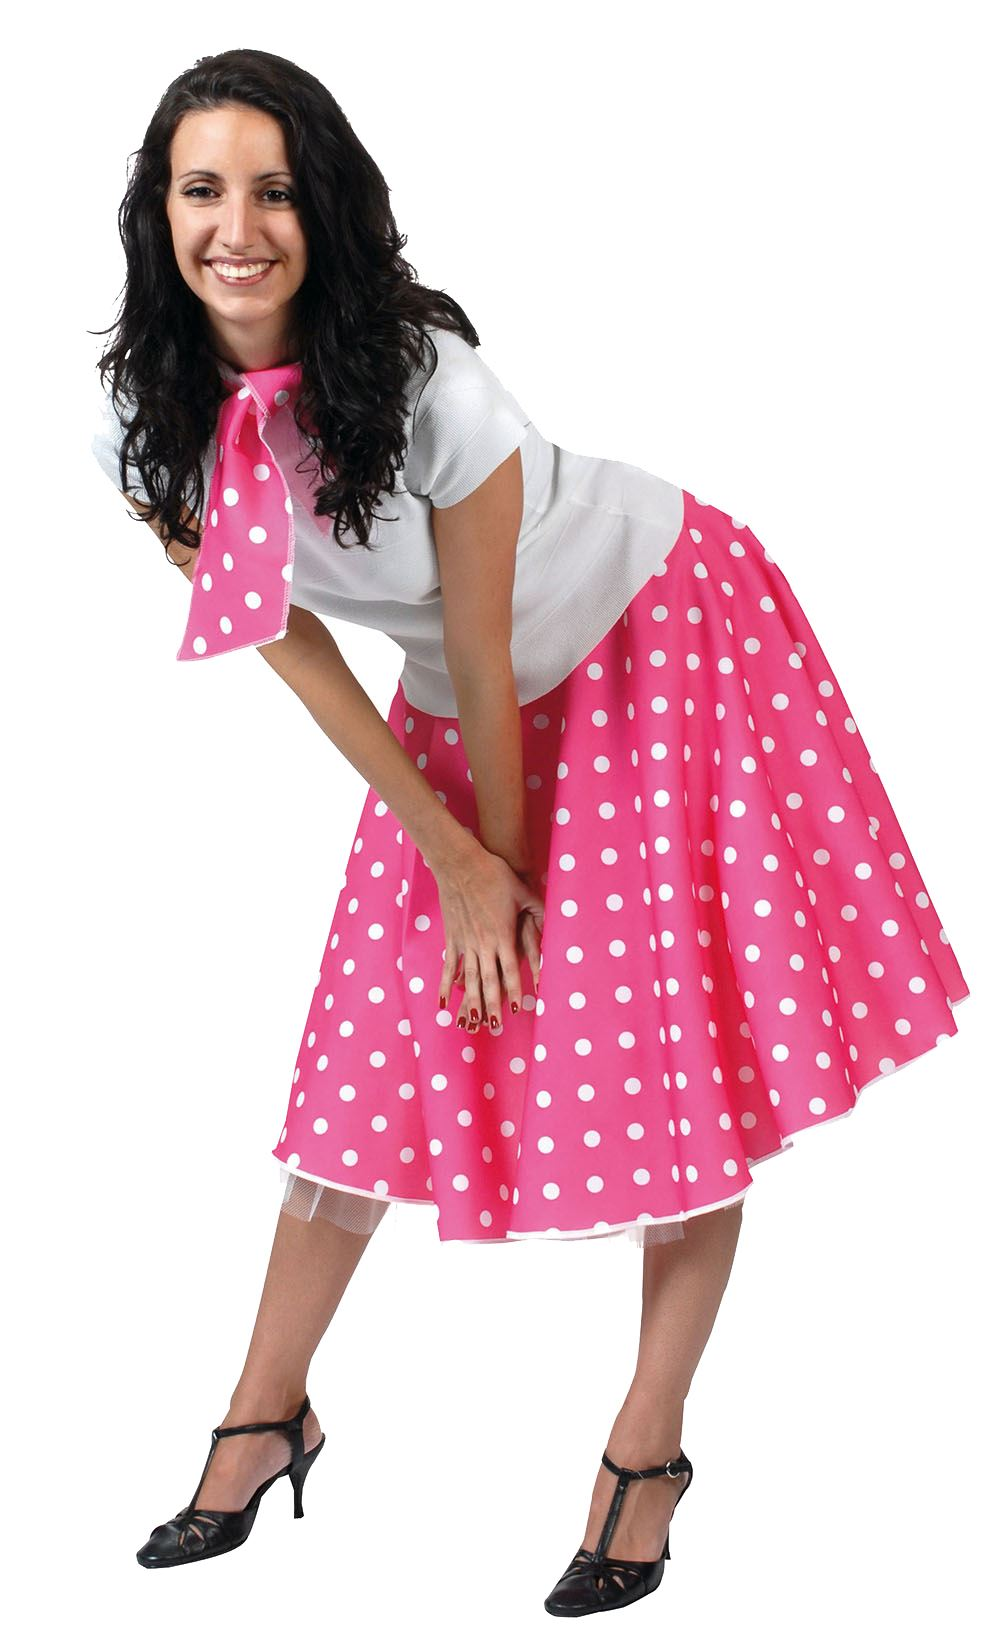 Ladies Polka Dot Skirt